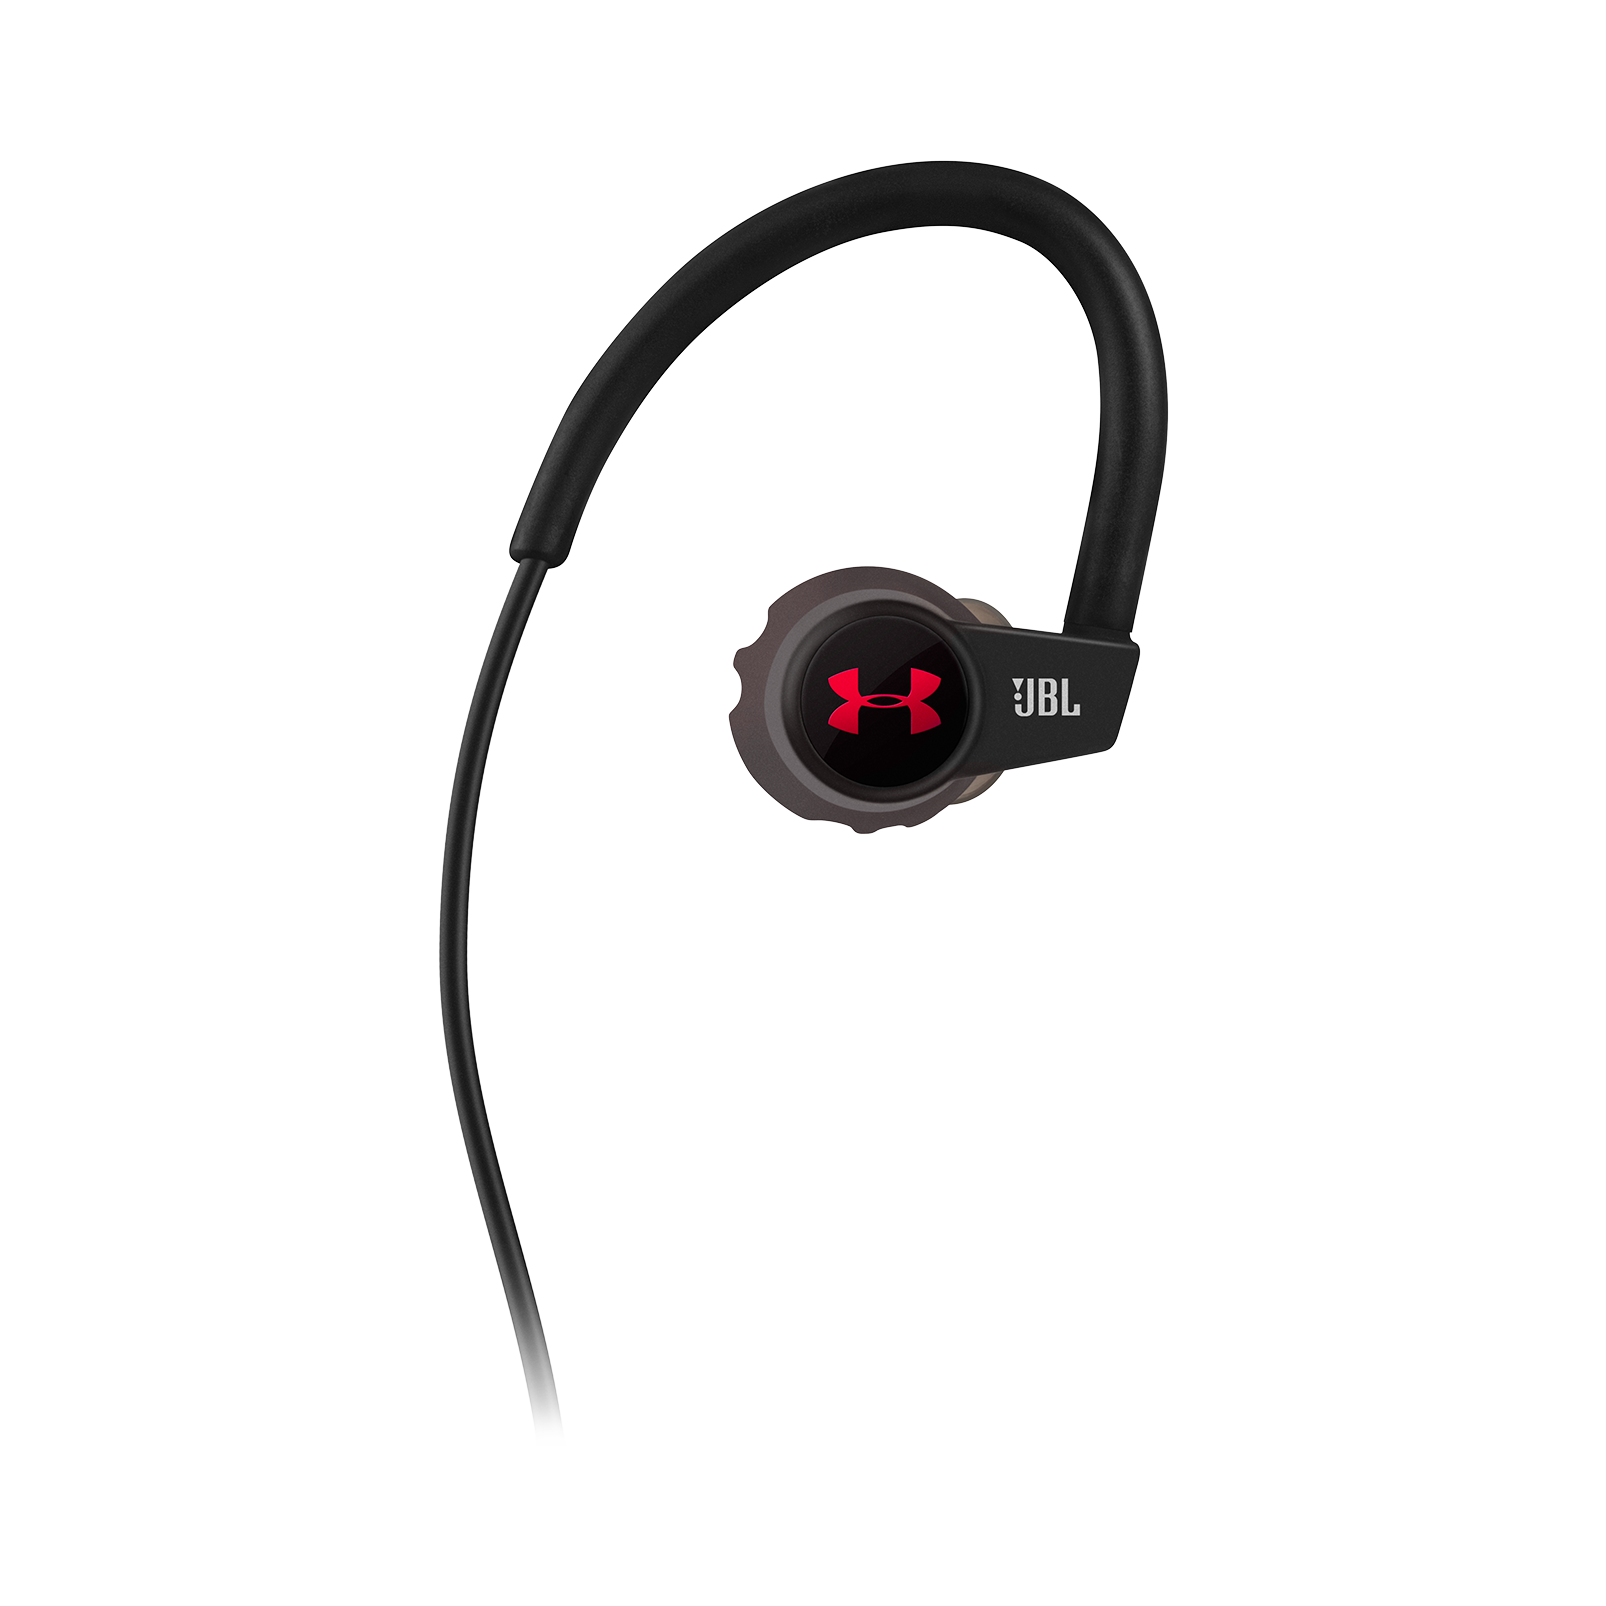 China:- - Black - Heart rate monitoring, wireless in-ear headphones for athletes - Front